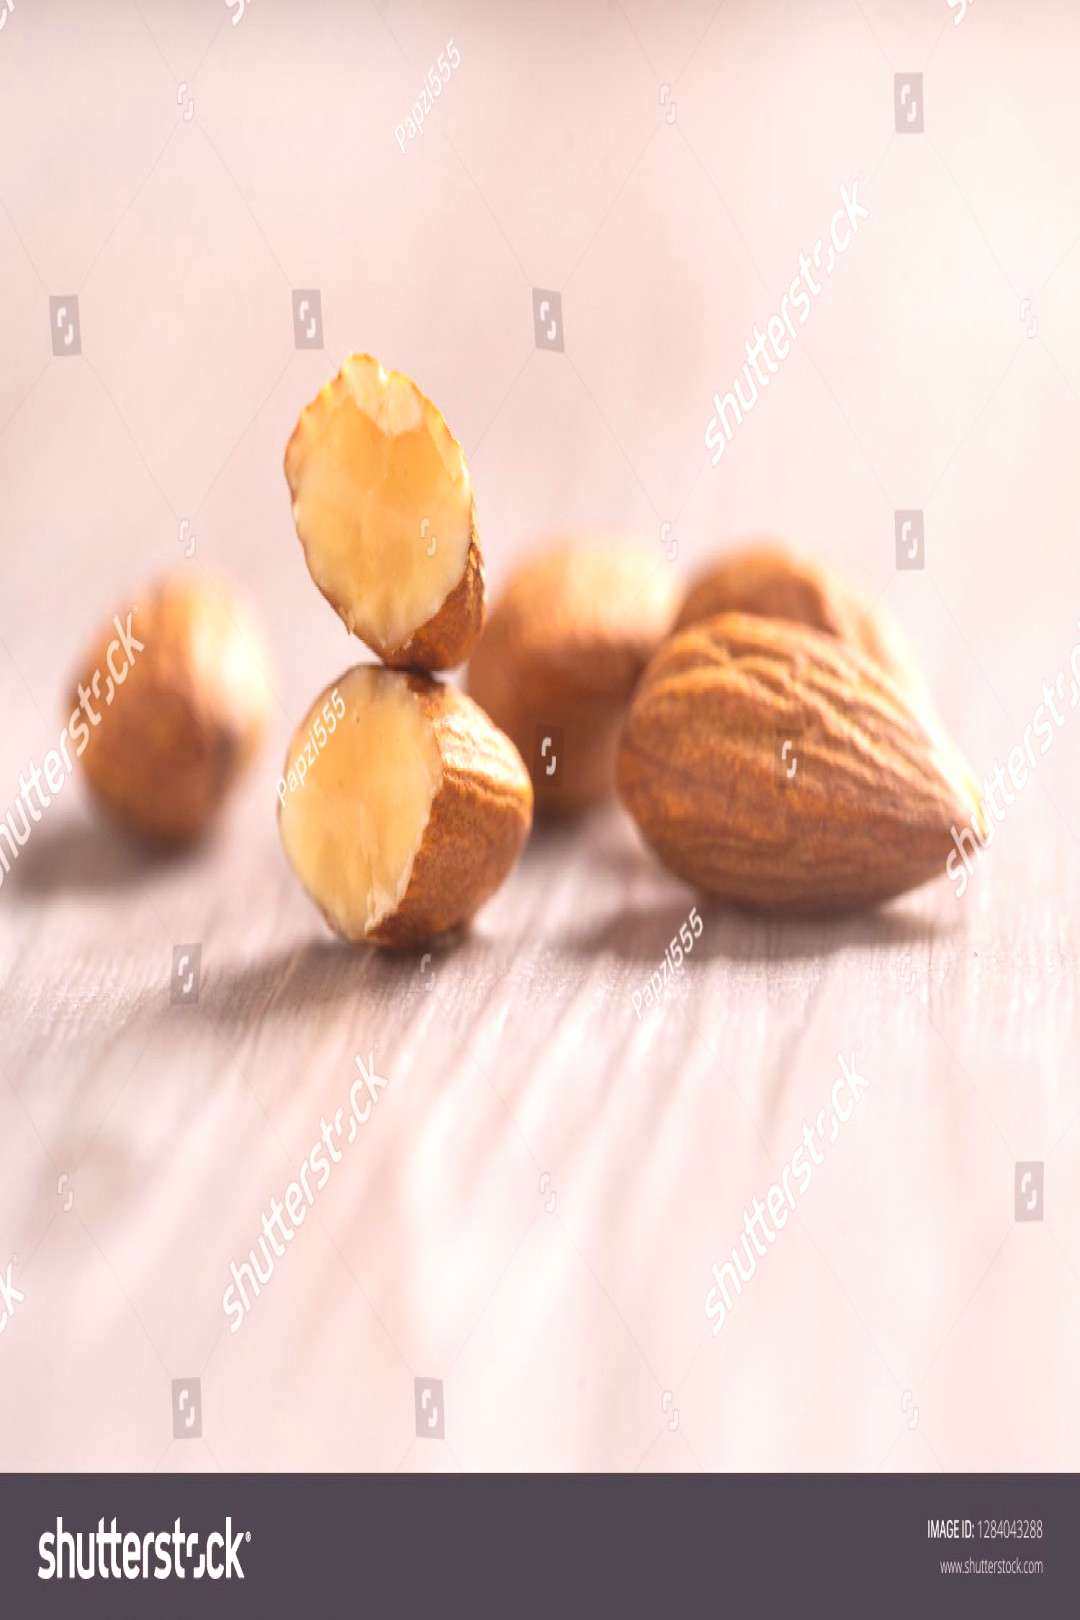 Closeup of almonds with wooden background. ,